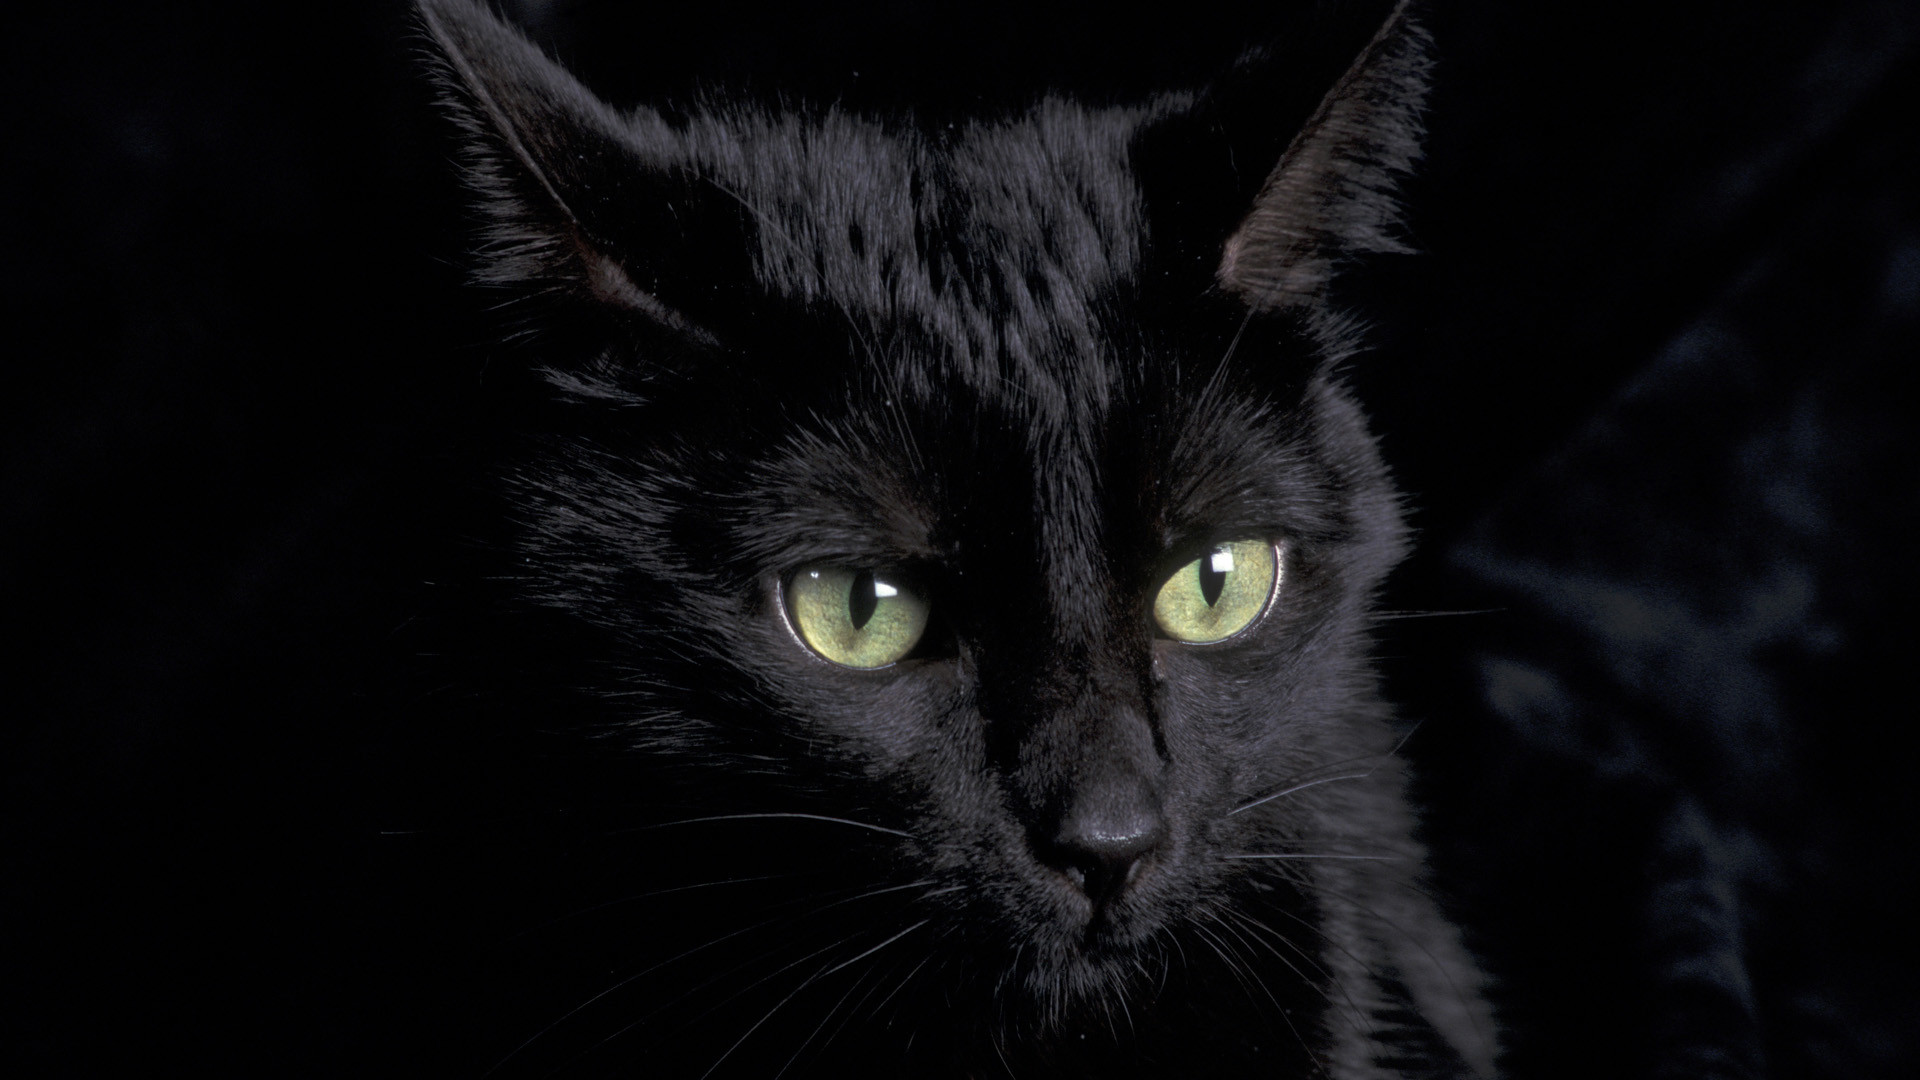 885661 black cat background 1920x1080 for mobile hd